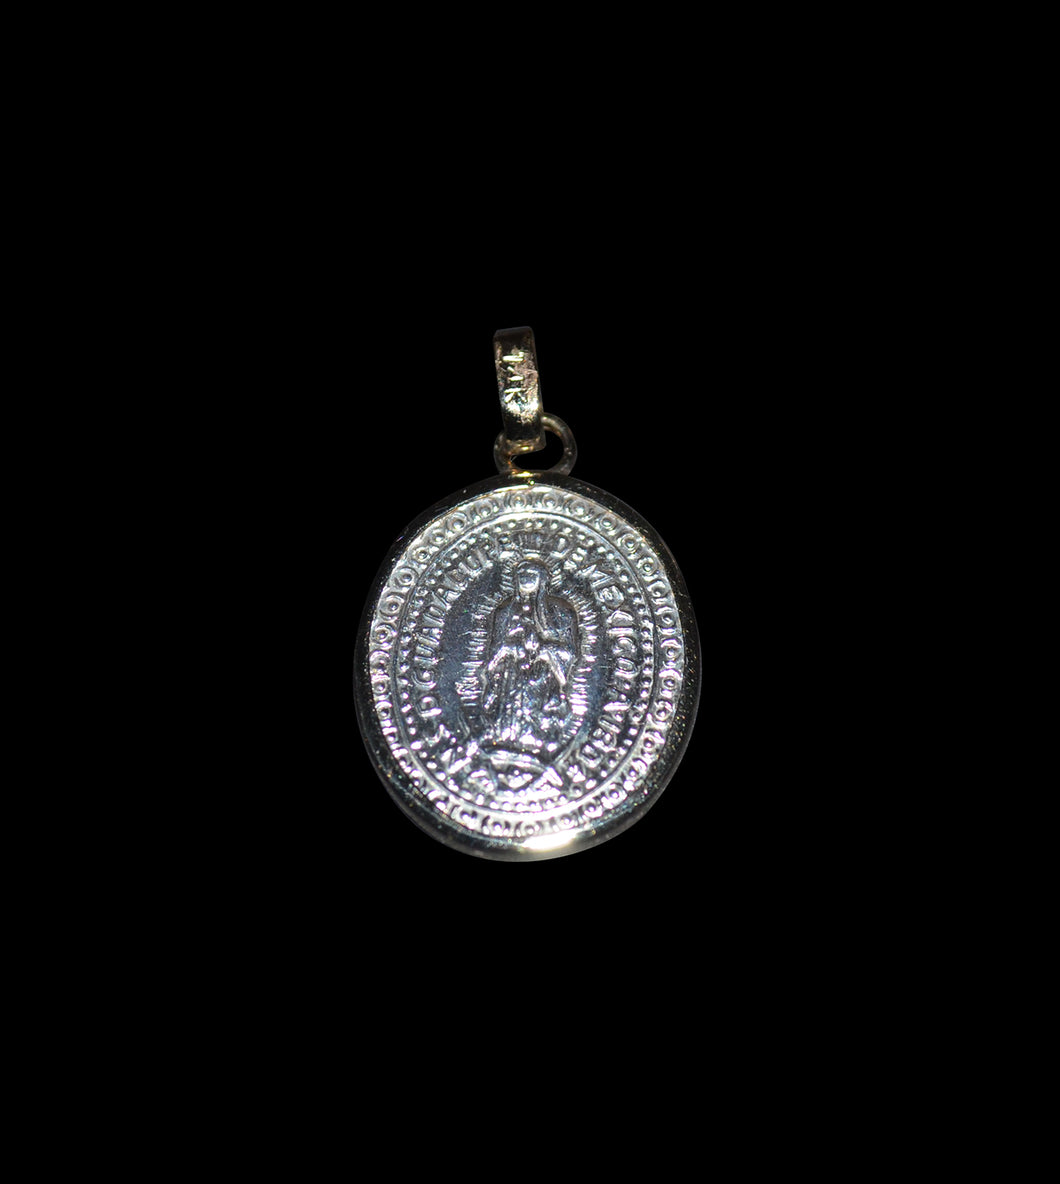 Small silver made with oval shape Guadalupe Madonna medallion